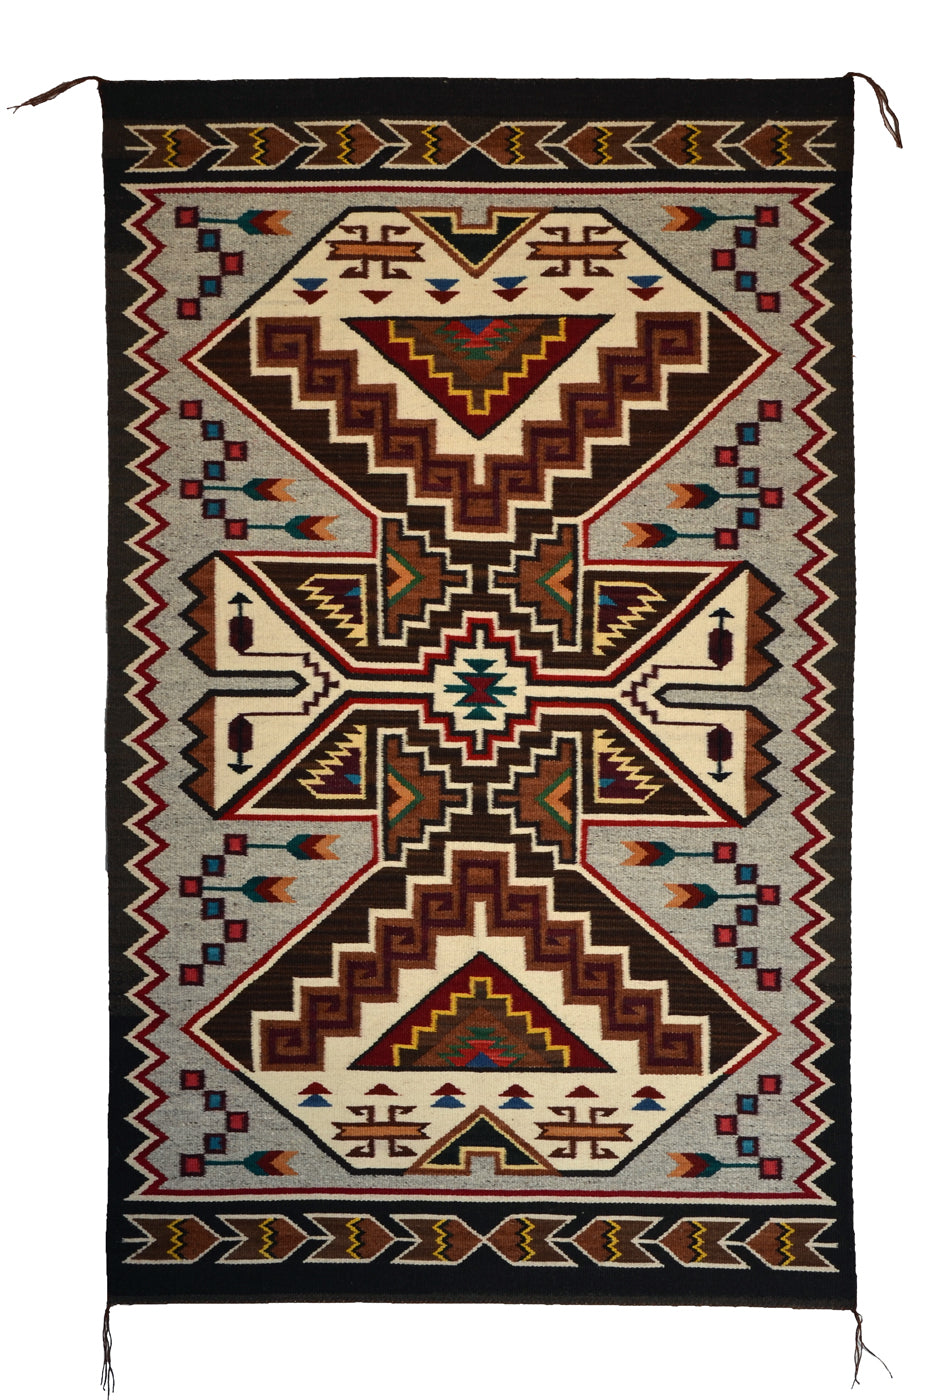 SOLD : Crystal Navajo Rug: Cara Yazzie (Gorman) : Churro 1648